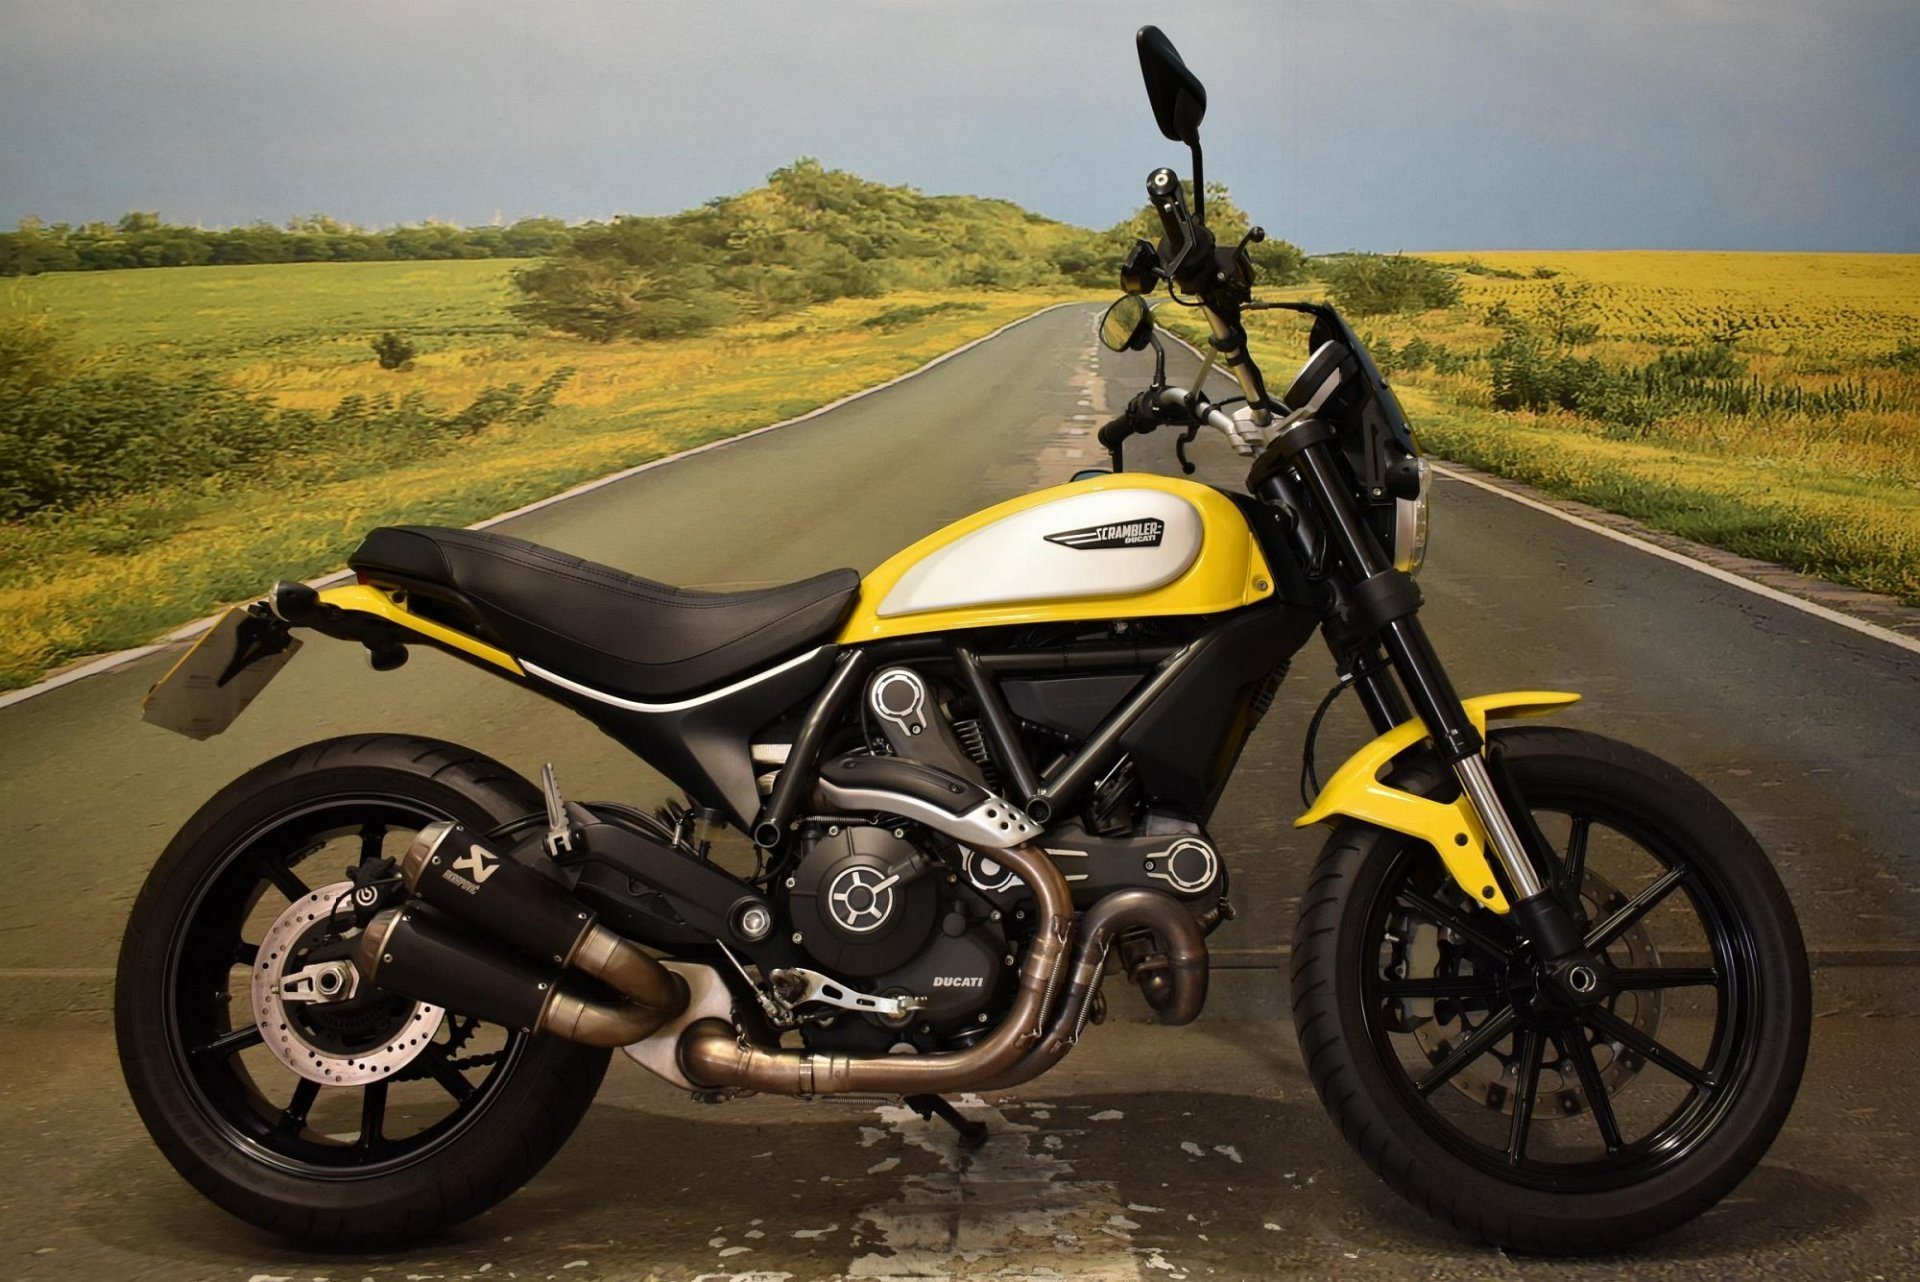 2017 Ducati Scrambler for sale in Derbyshire